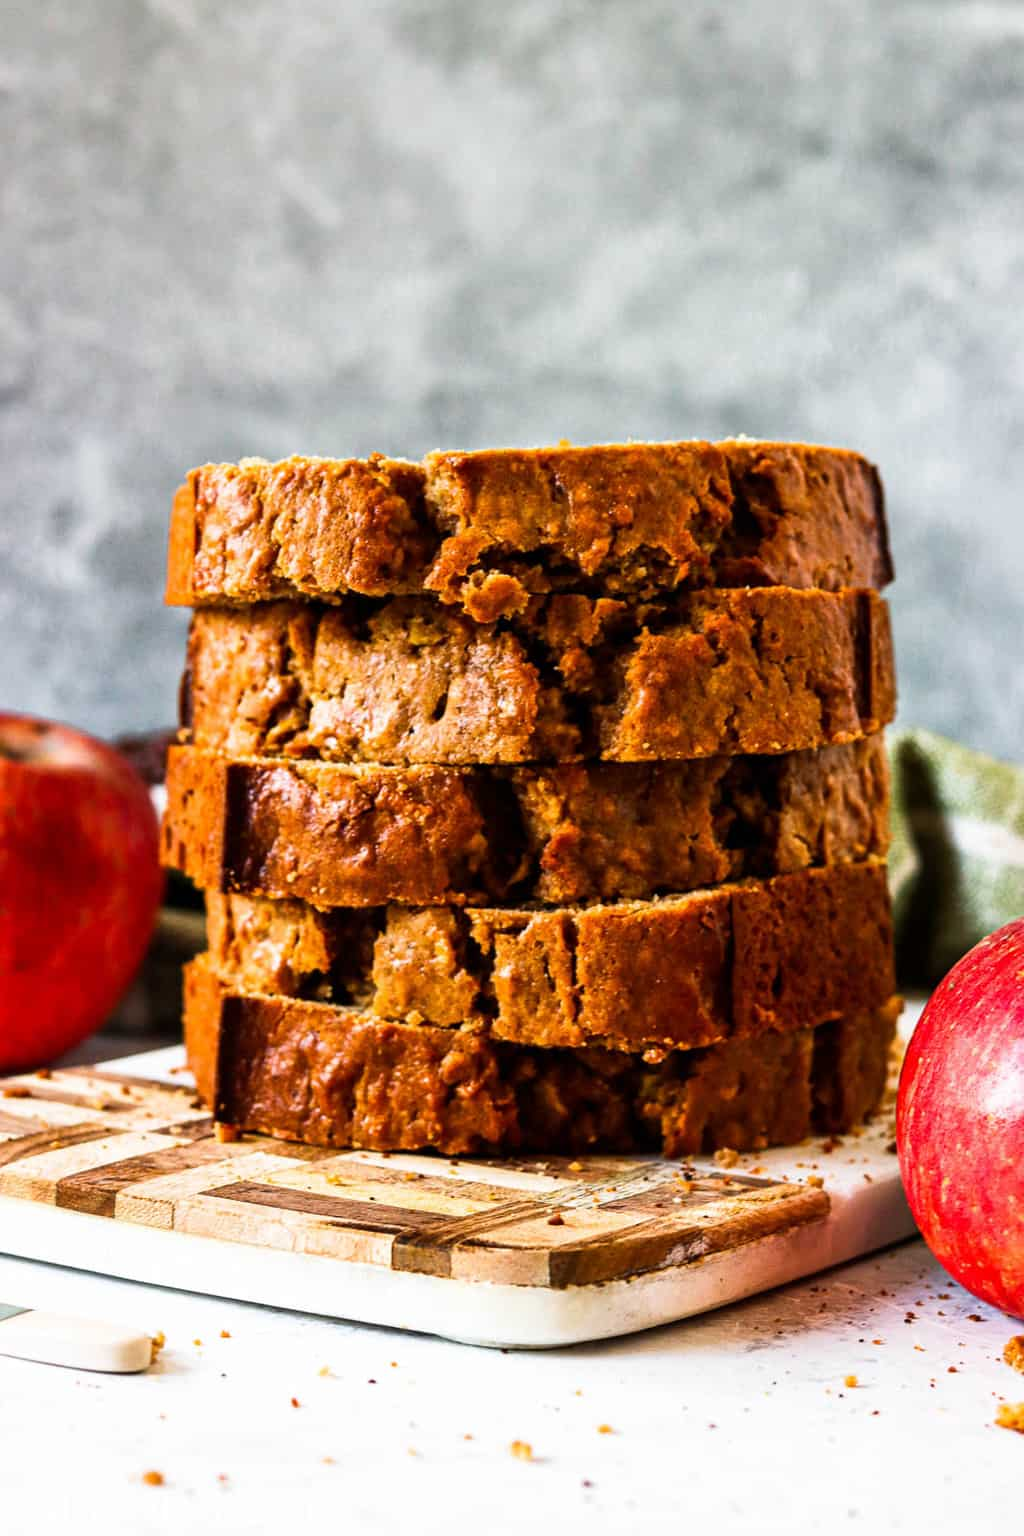 Thick slices of cinnamon apple bread sacked on each other on a cutting board